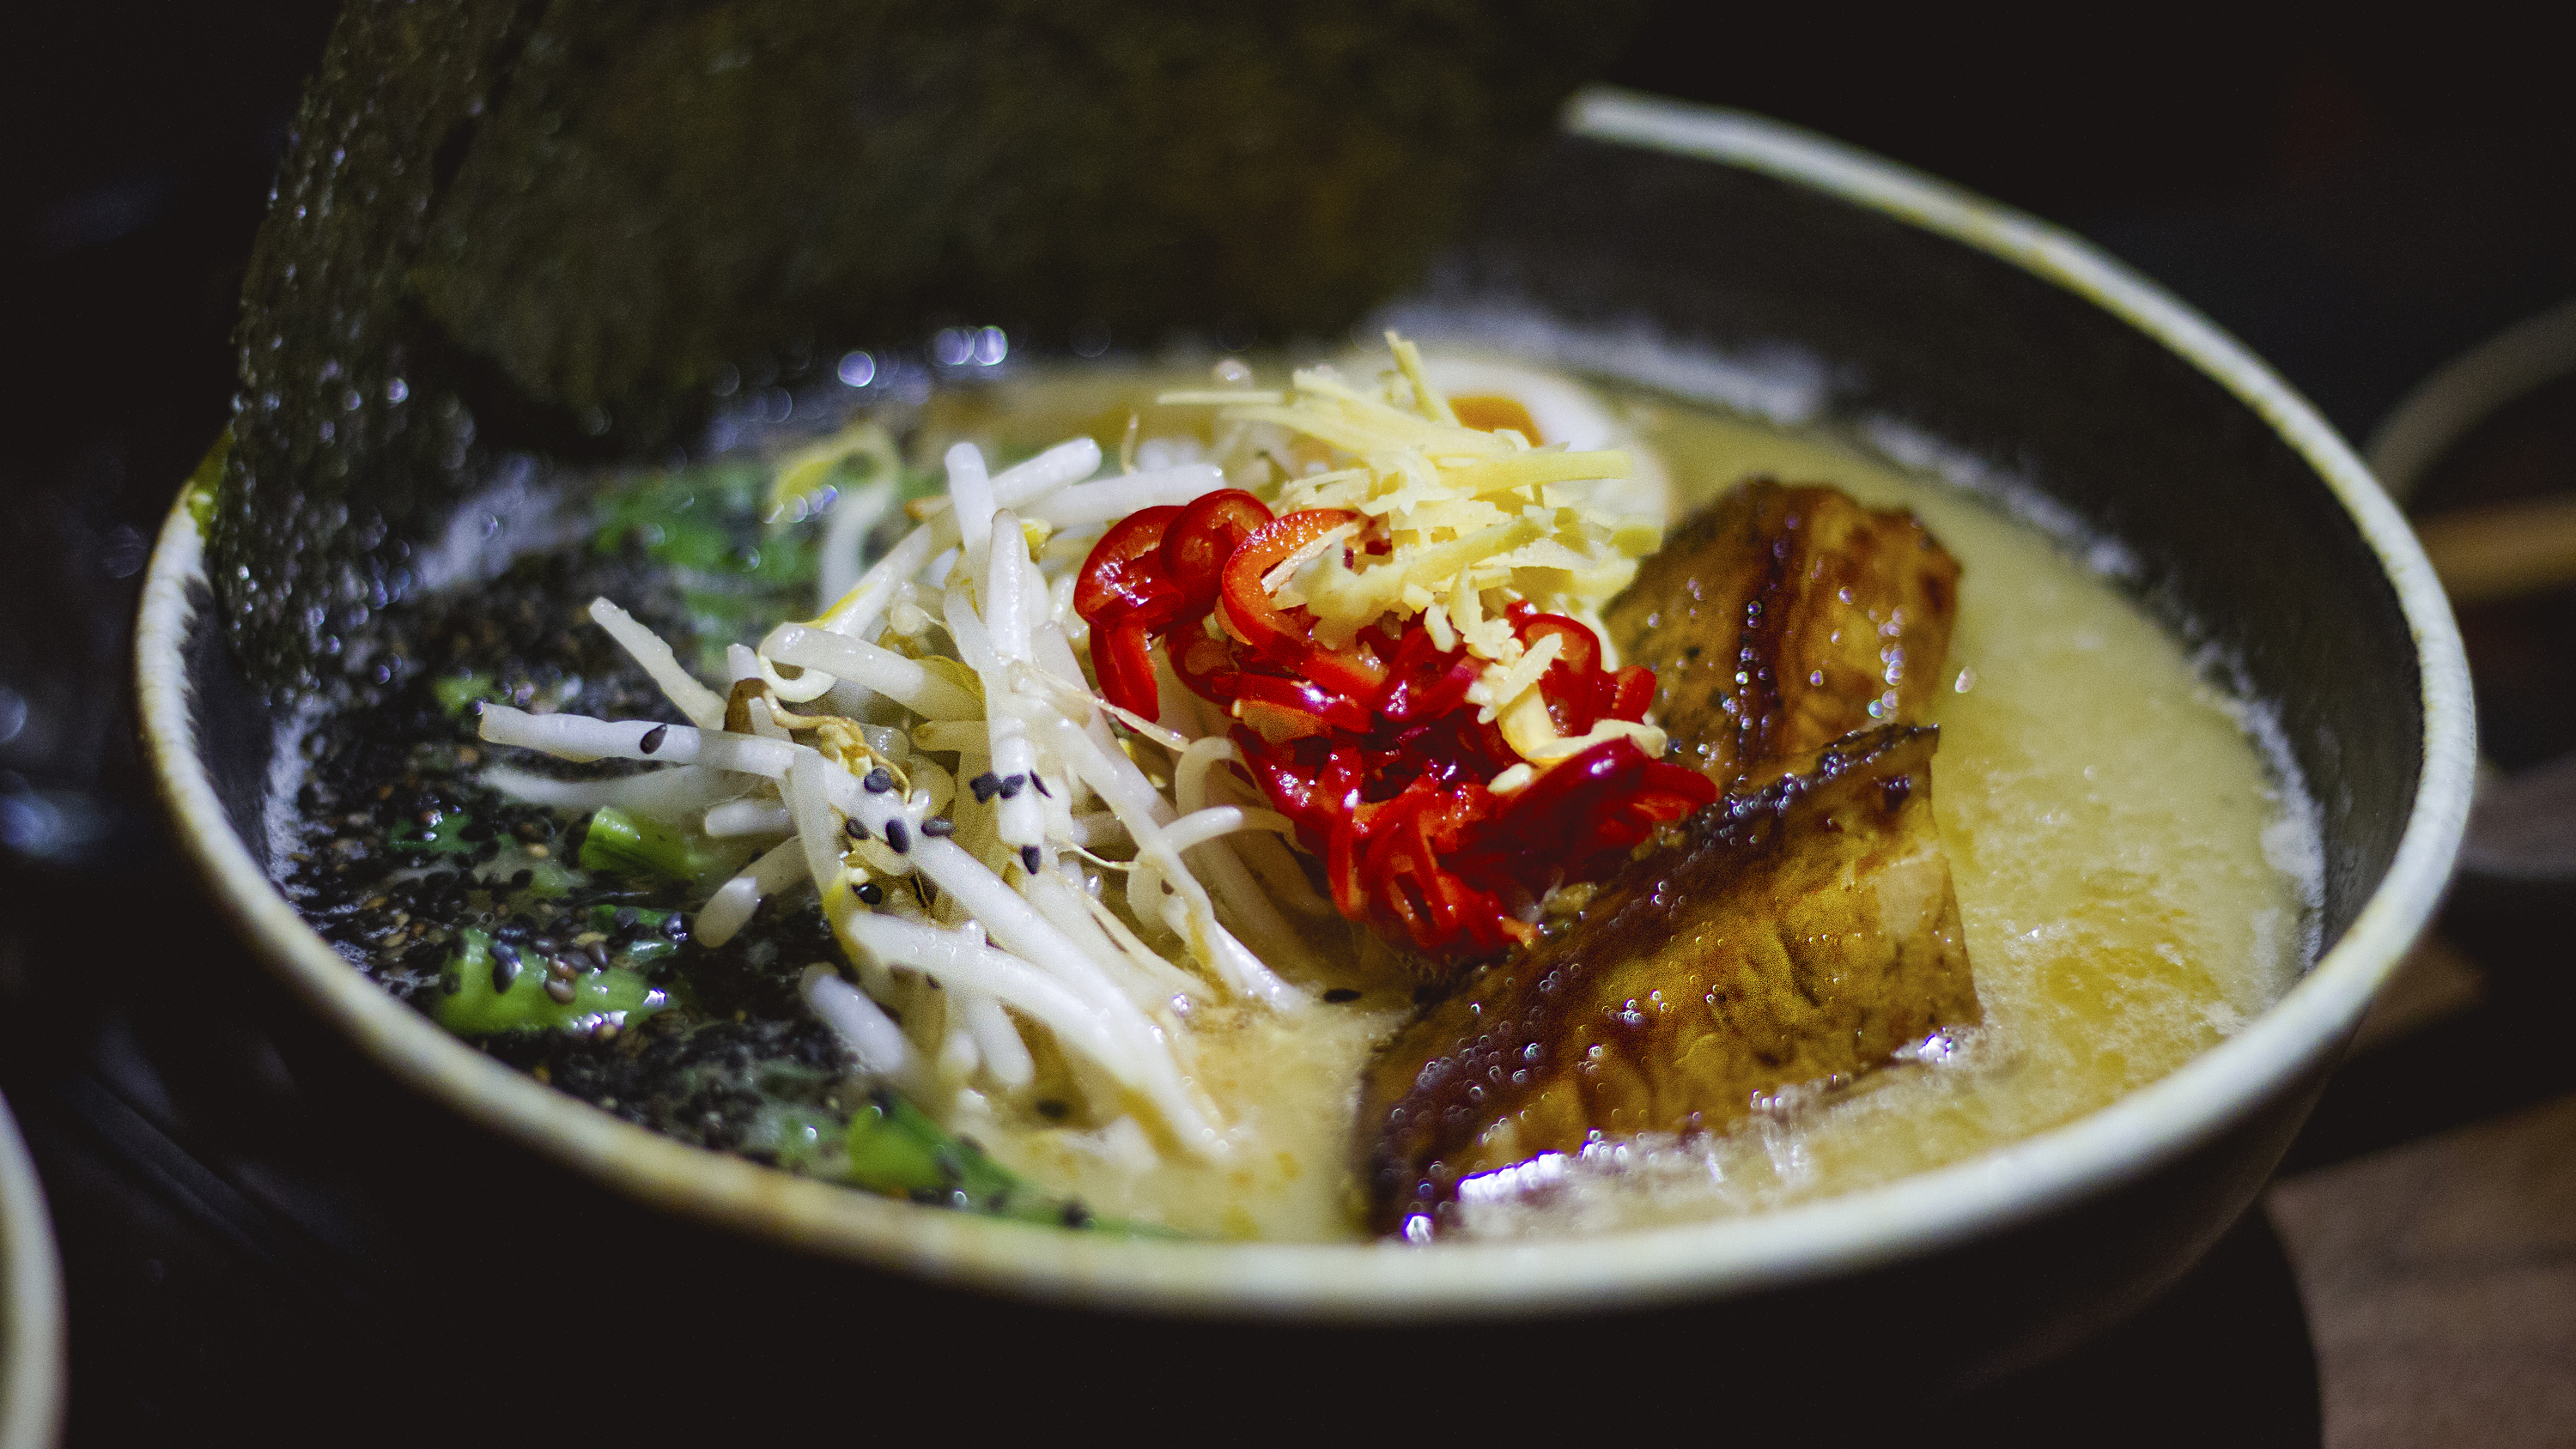 "<meta charset=""utf-8"" /><p><span>Peads and Barnetts pork-bone shio ramen with&nbsp;</span><span class=""recipe"">dashi, komatsuna, bean sprouts, black pepper chashu, pickled Fresno chilis, fermented black bean paste, and tamago</span></p>"